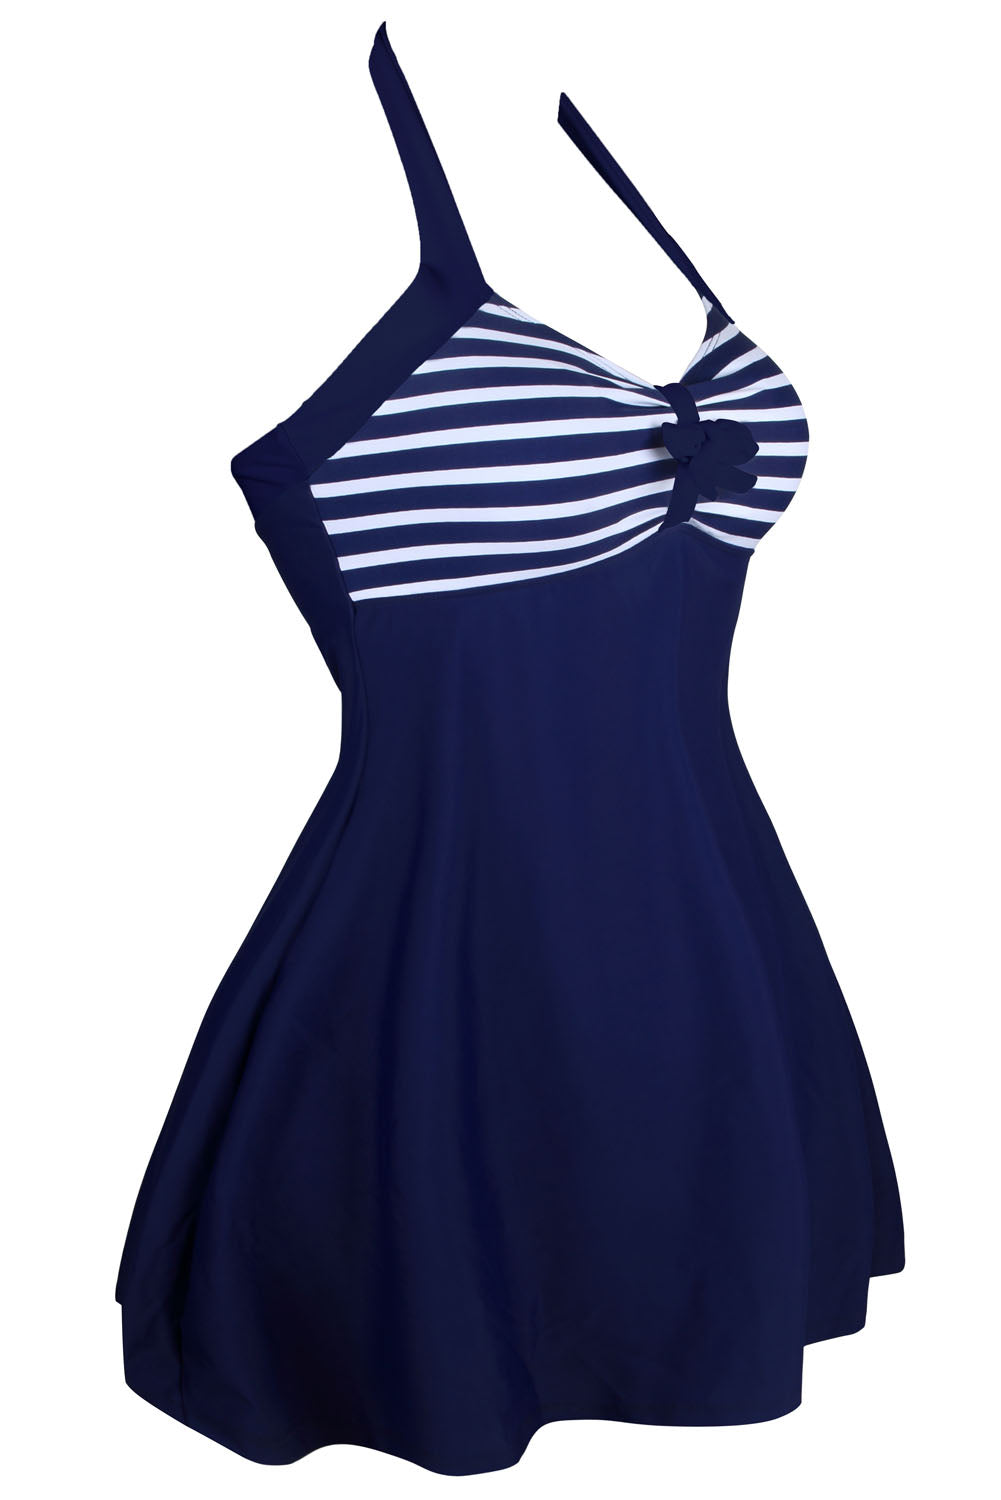 Navy White Stripes One-piece Swimdress One-Piece Swimwear Discount Designer Fashion Clothes Shoes Bags Women Men Kids Children Black Owned Business